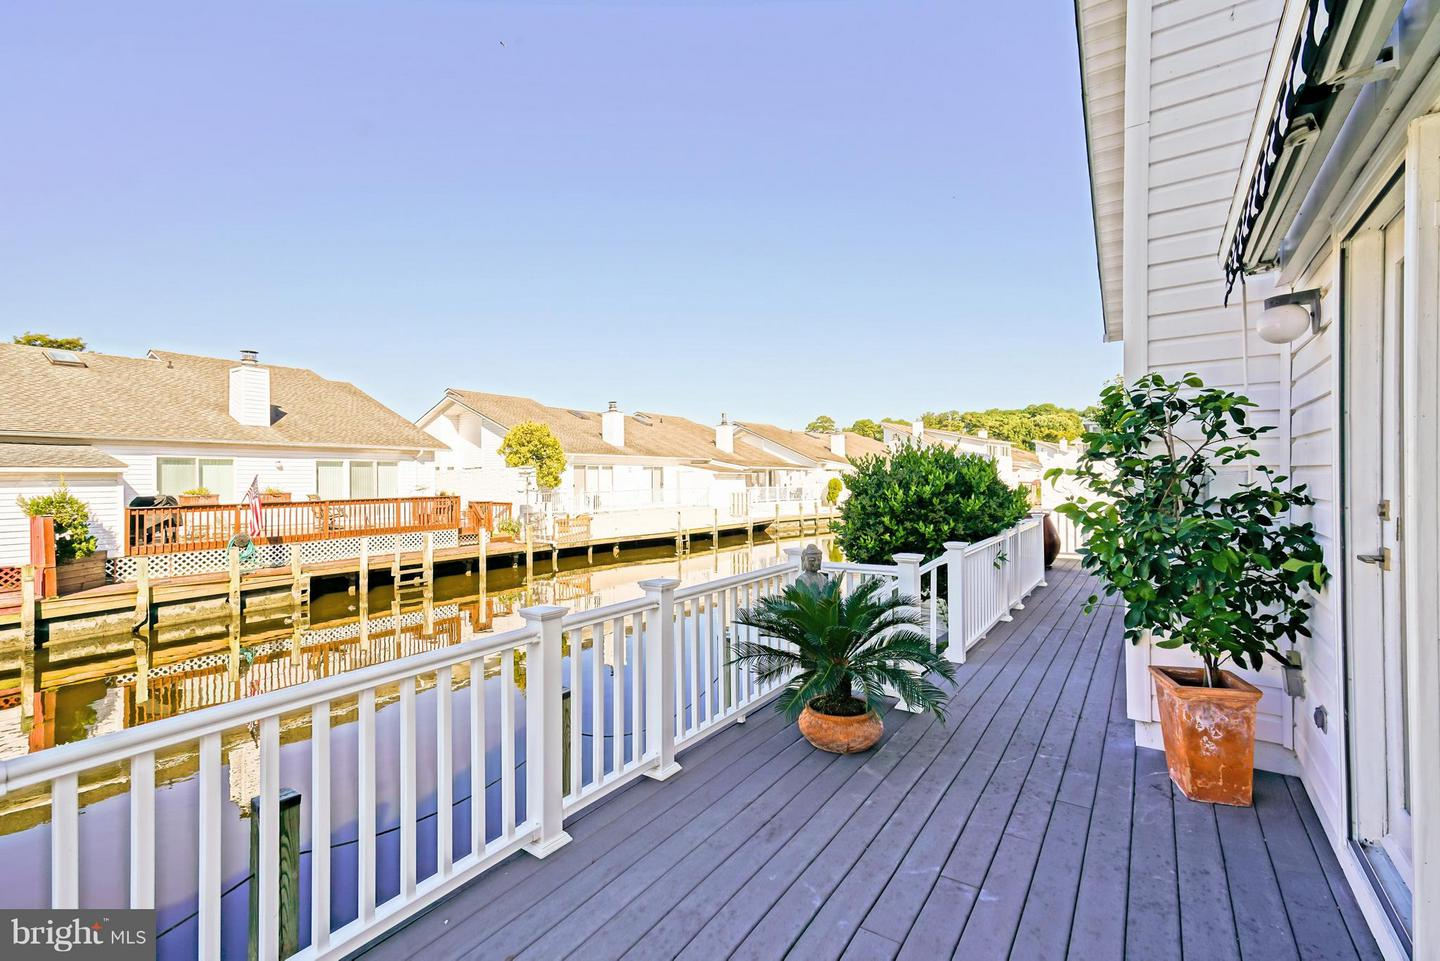 1009977298-300927273155-2019-05-18-11-04-49 34 Hunters Pointe | Millsboro, DE Real Estate For Sale | MLS# 1009977298  - Lee Ann Group